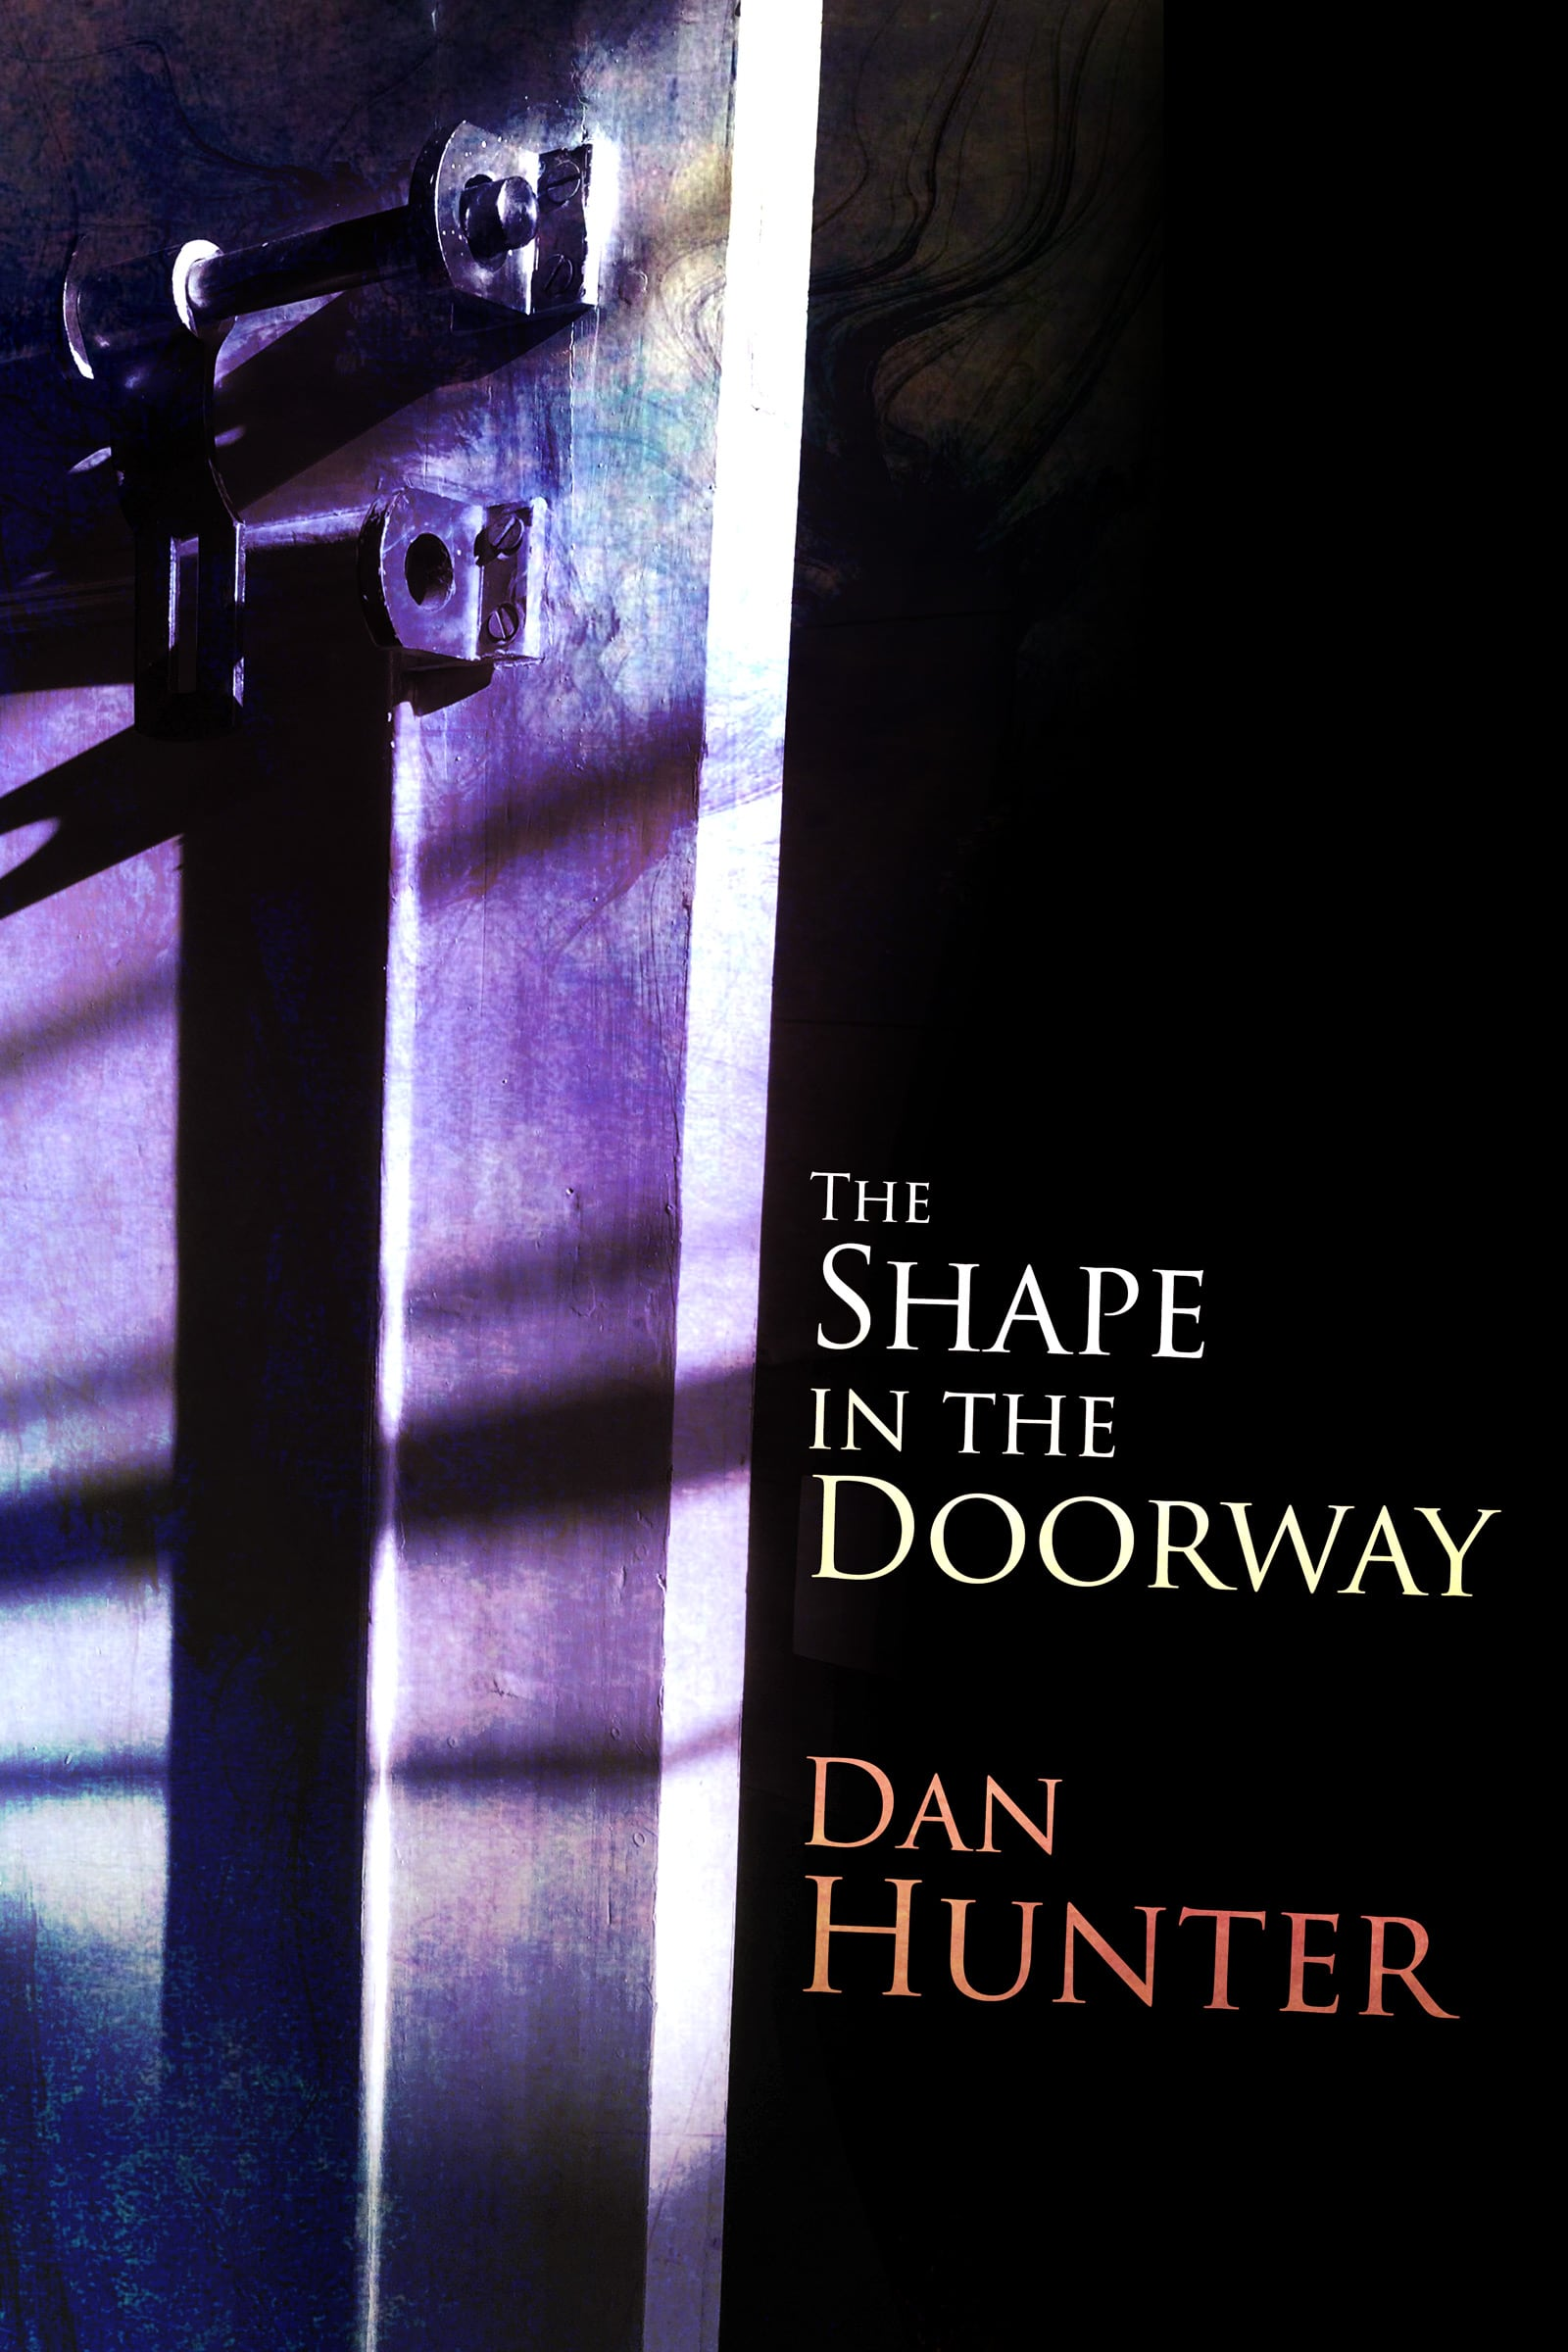 The Shape in the Doorway